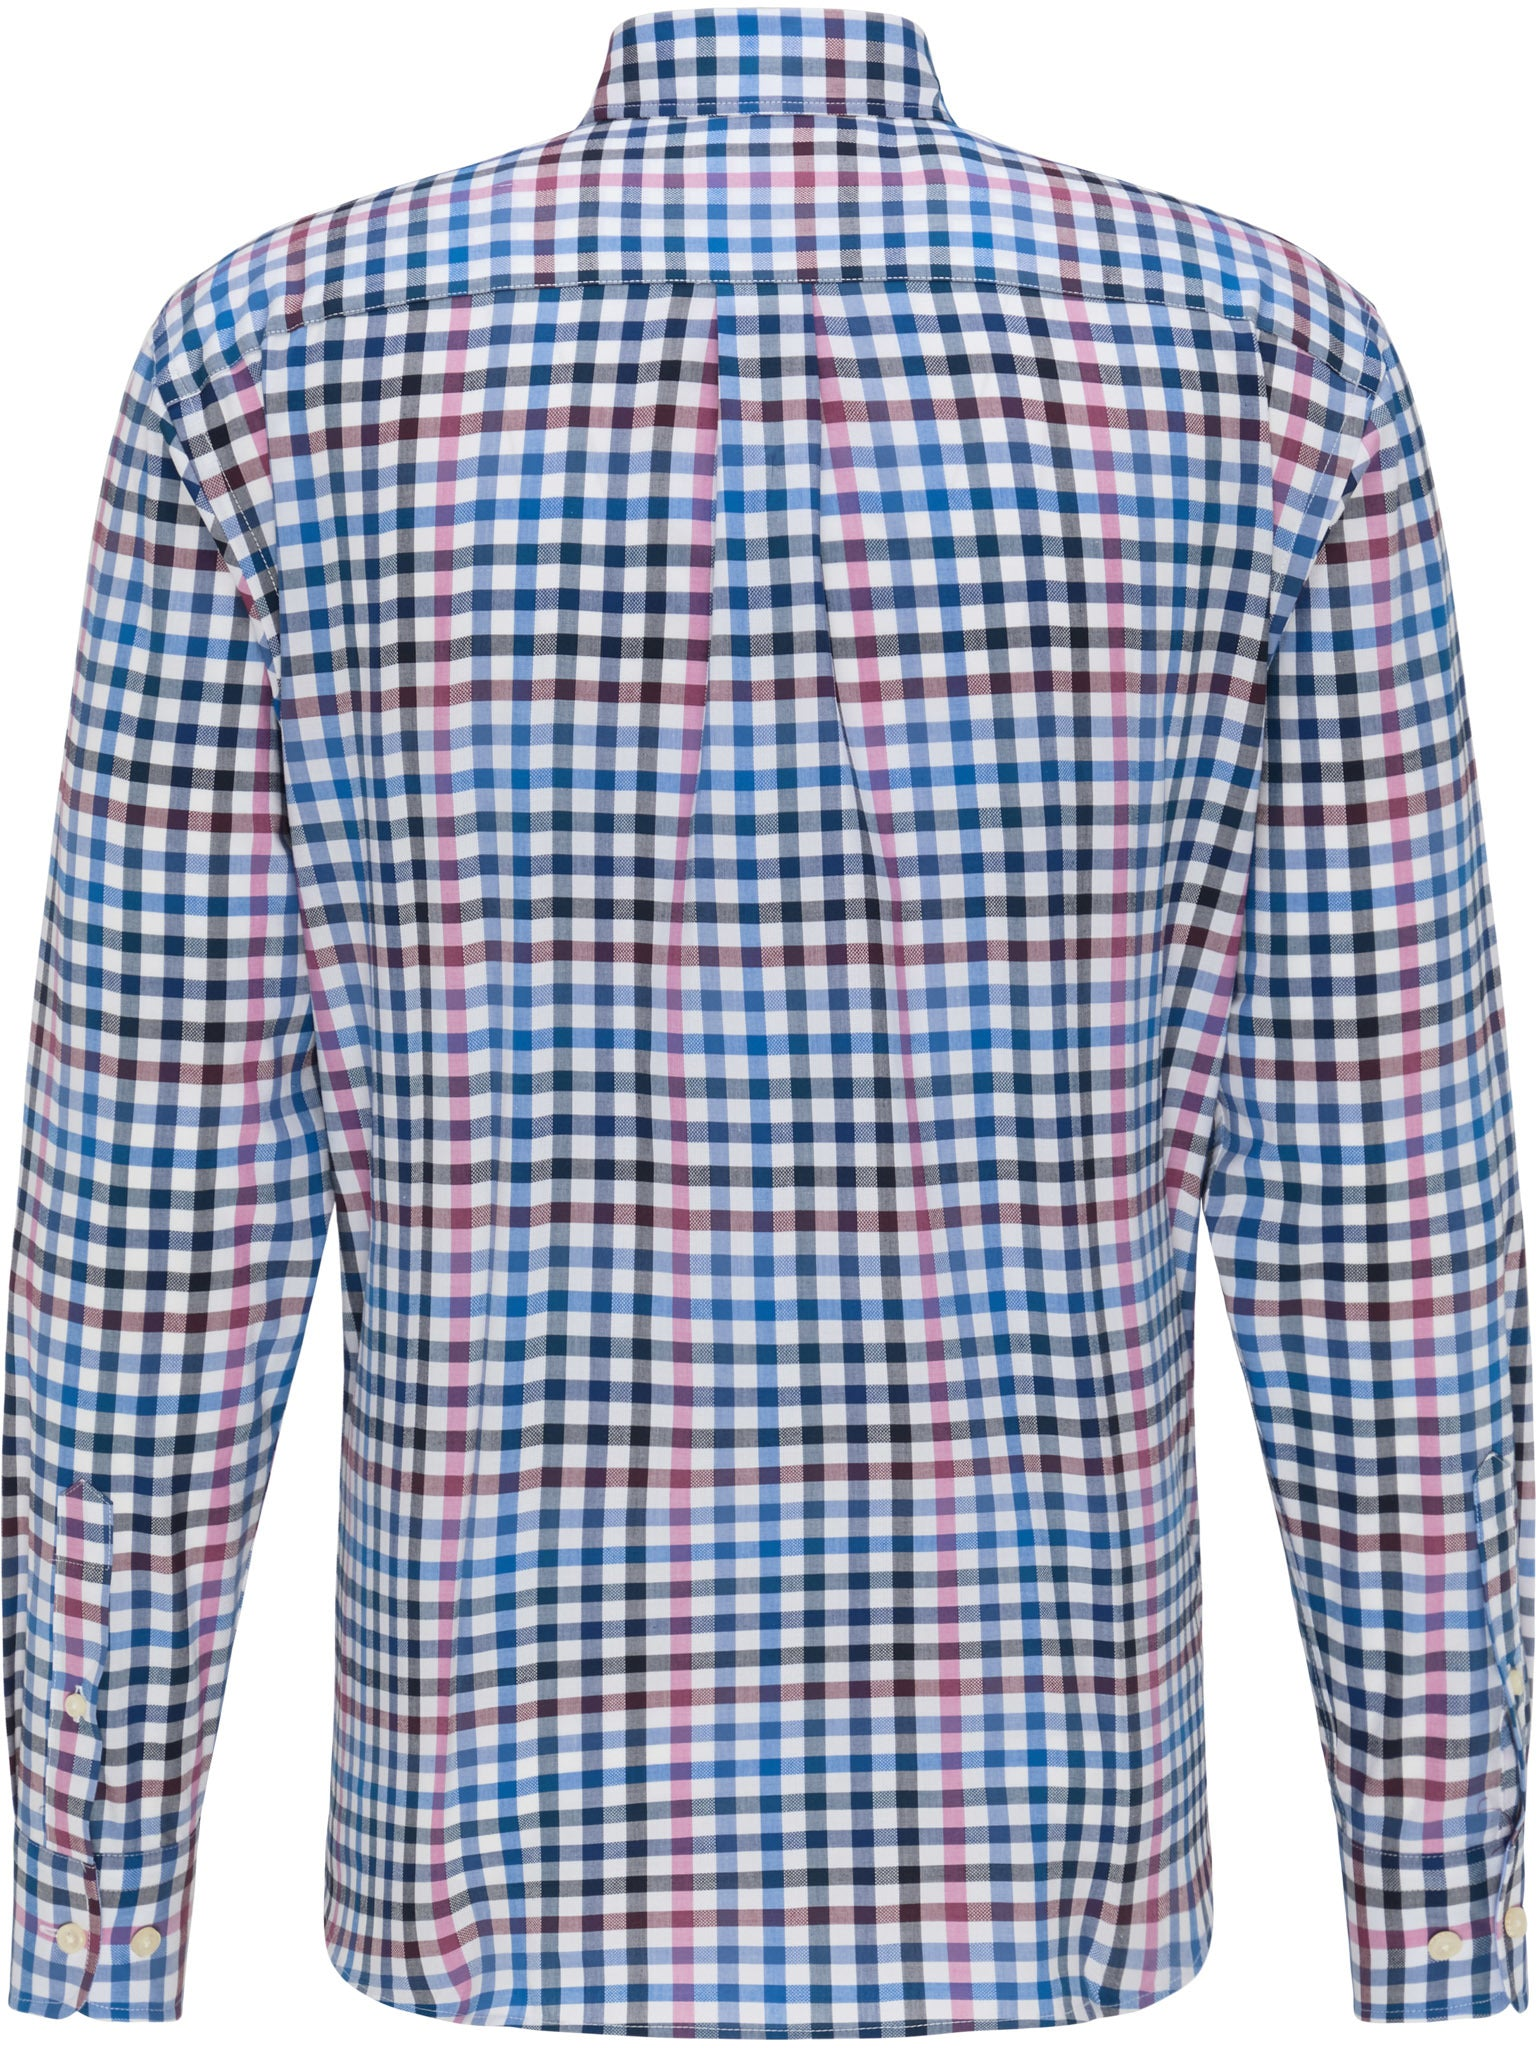 Fynch Hatton Supersoft Combi Check Shirt for Men in Dragonfruit-Blue